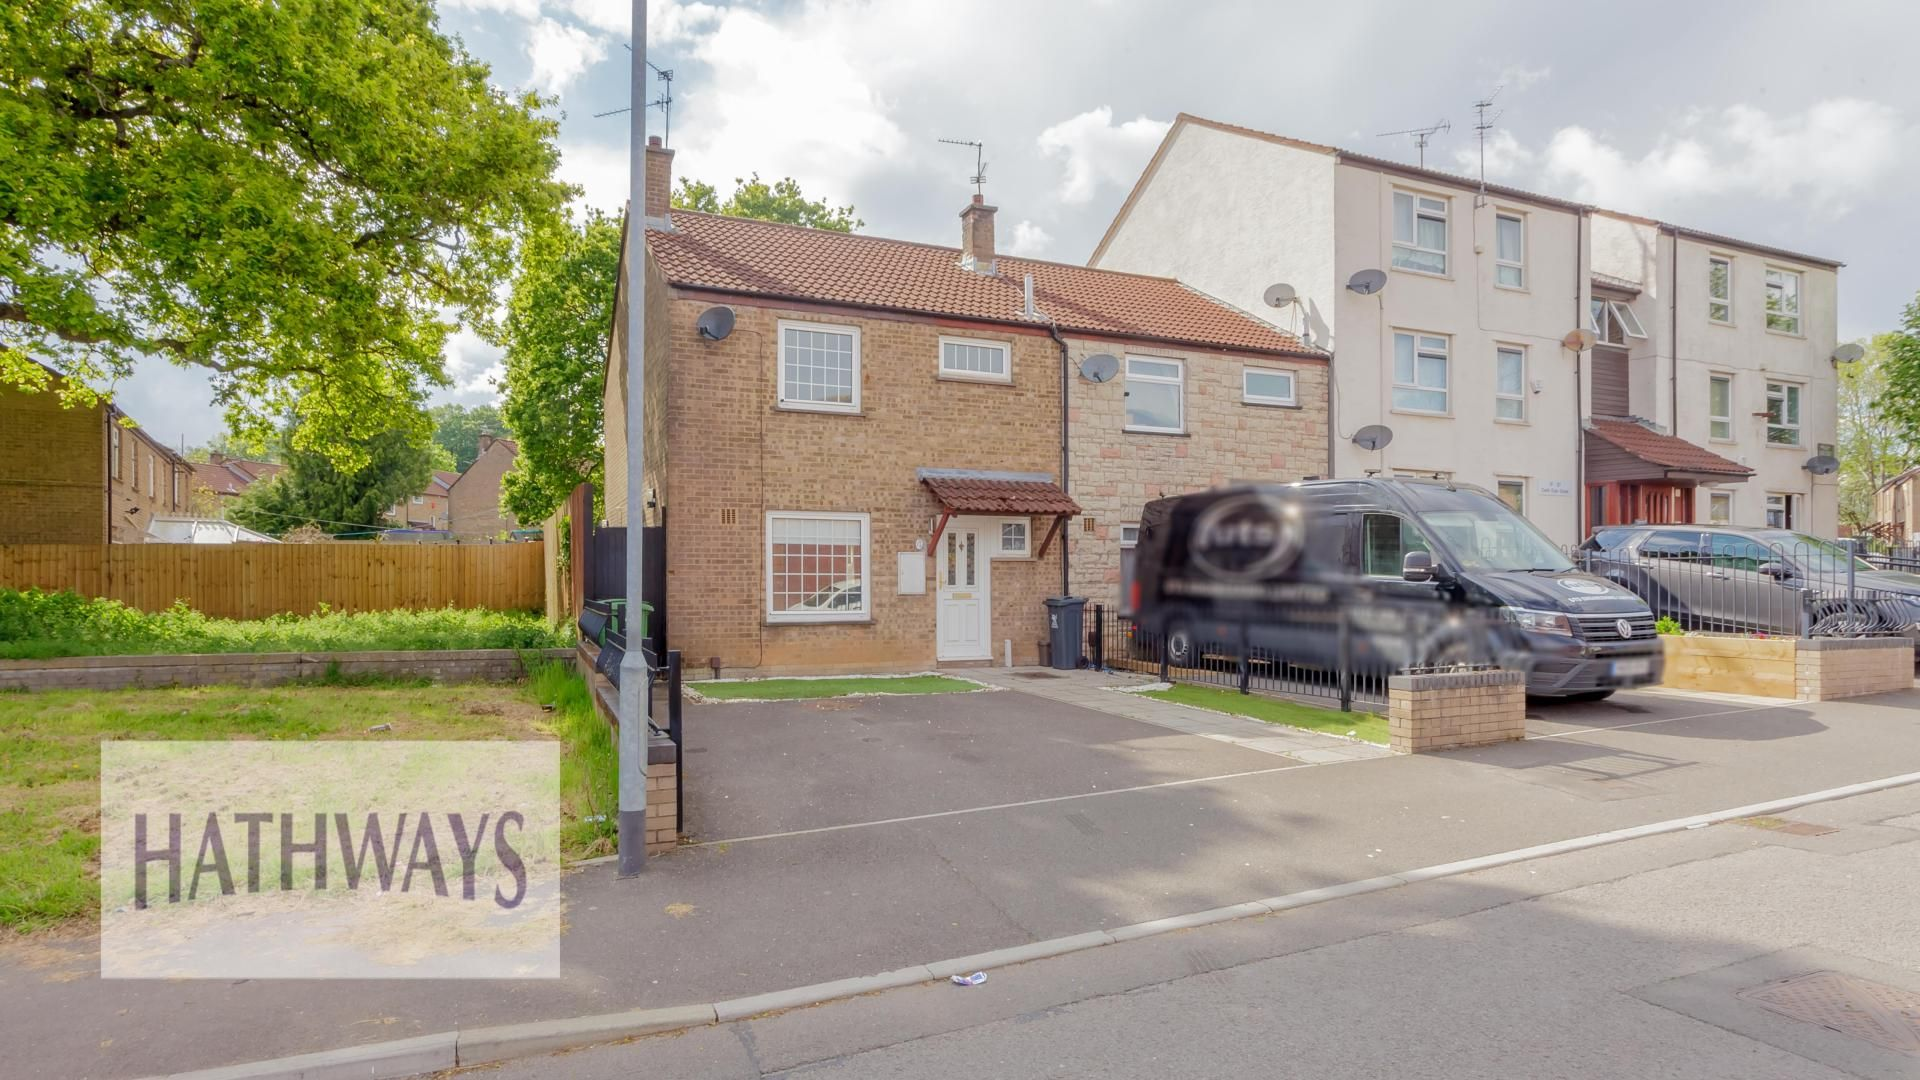 3 bed house for sale in Cathcob Close, CF3